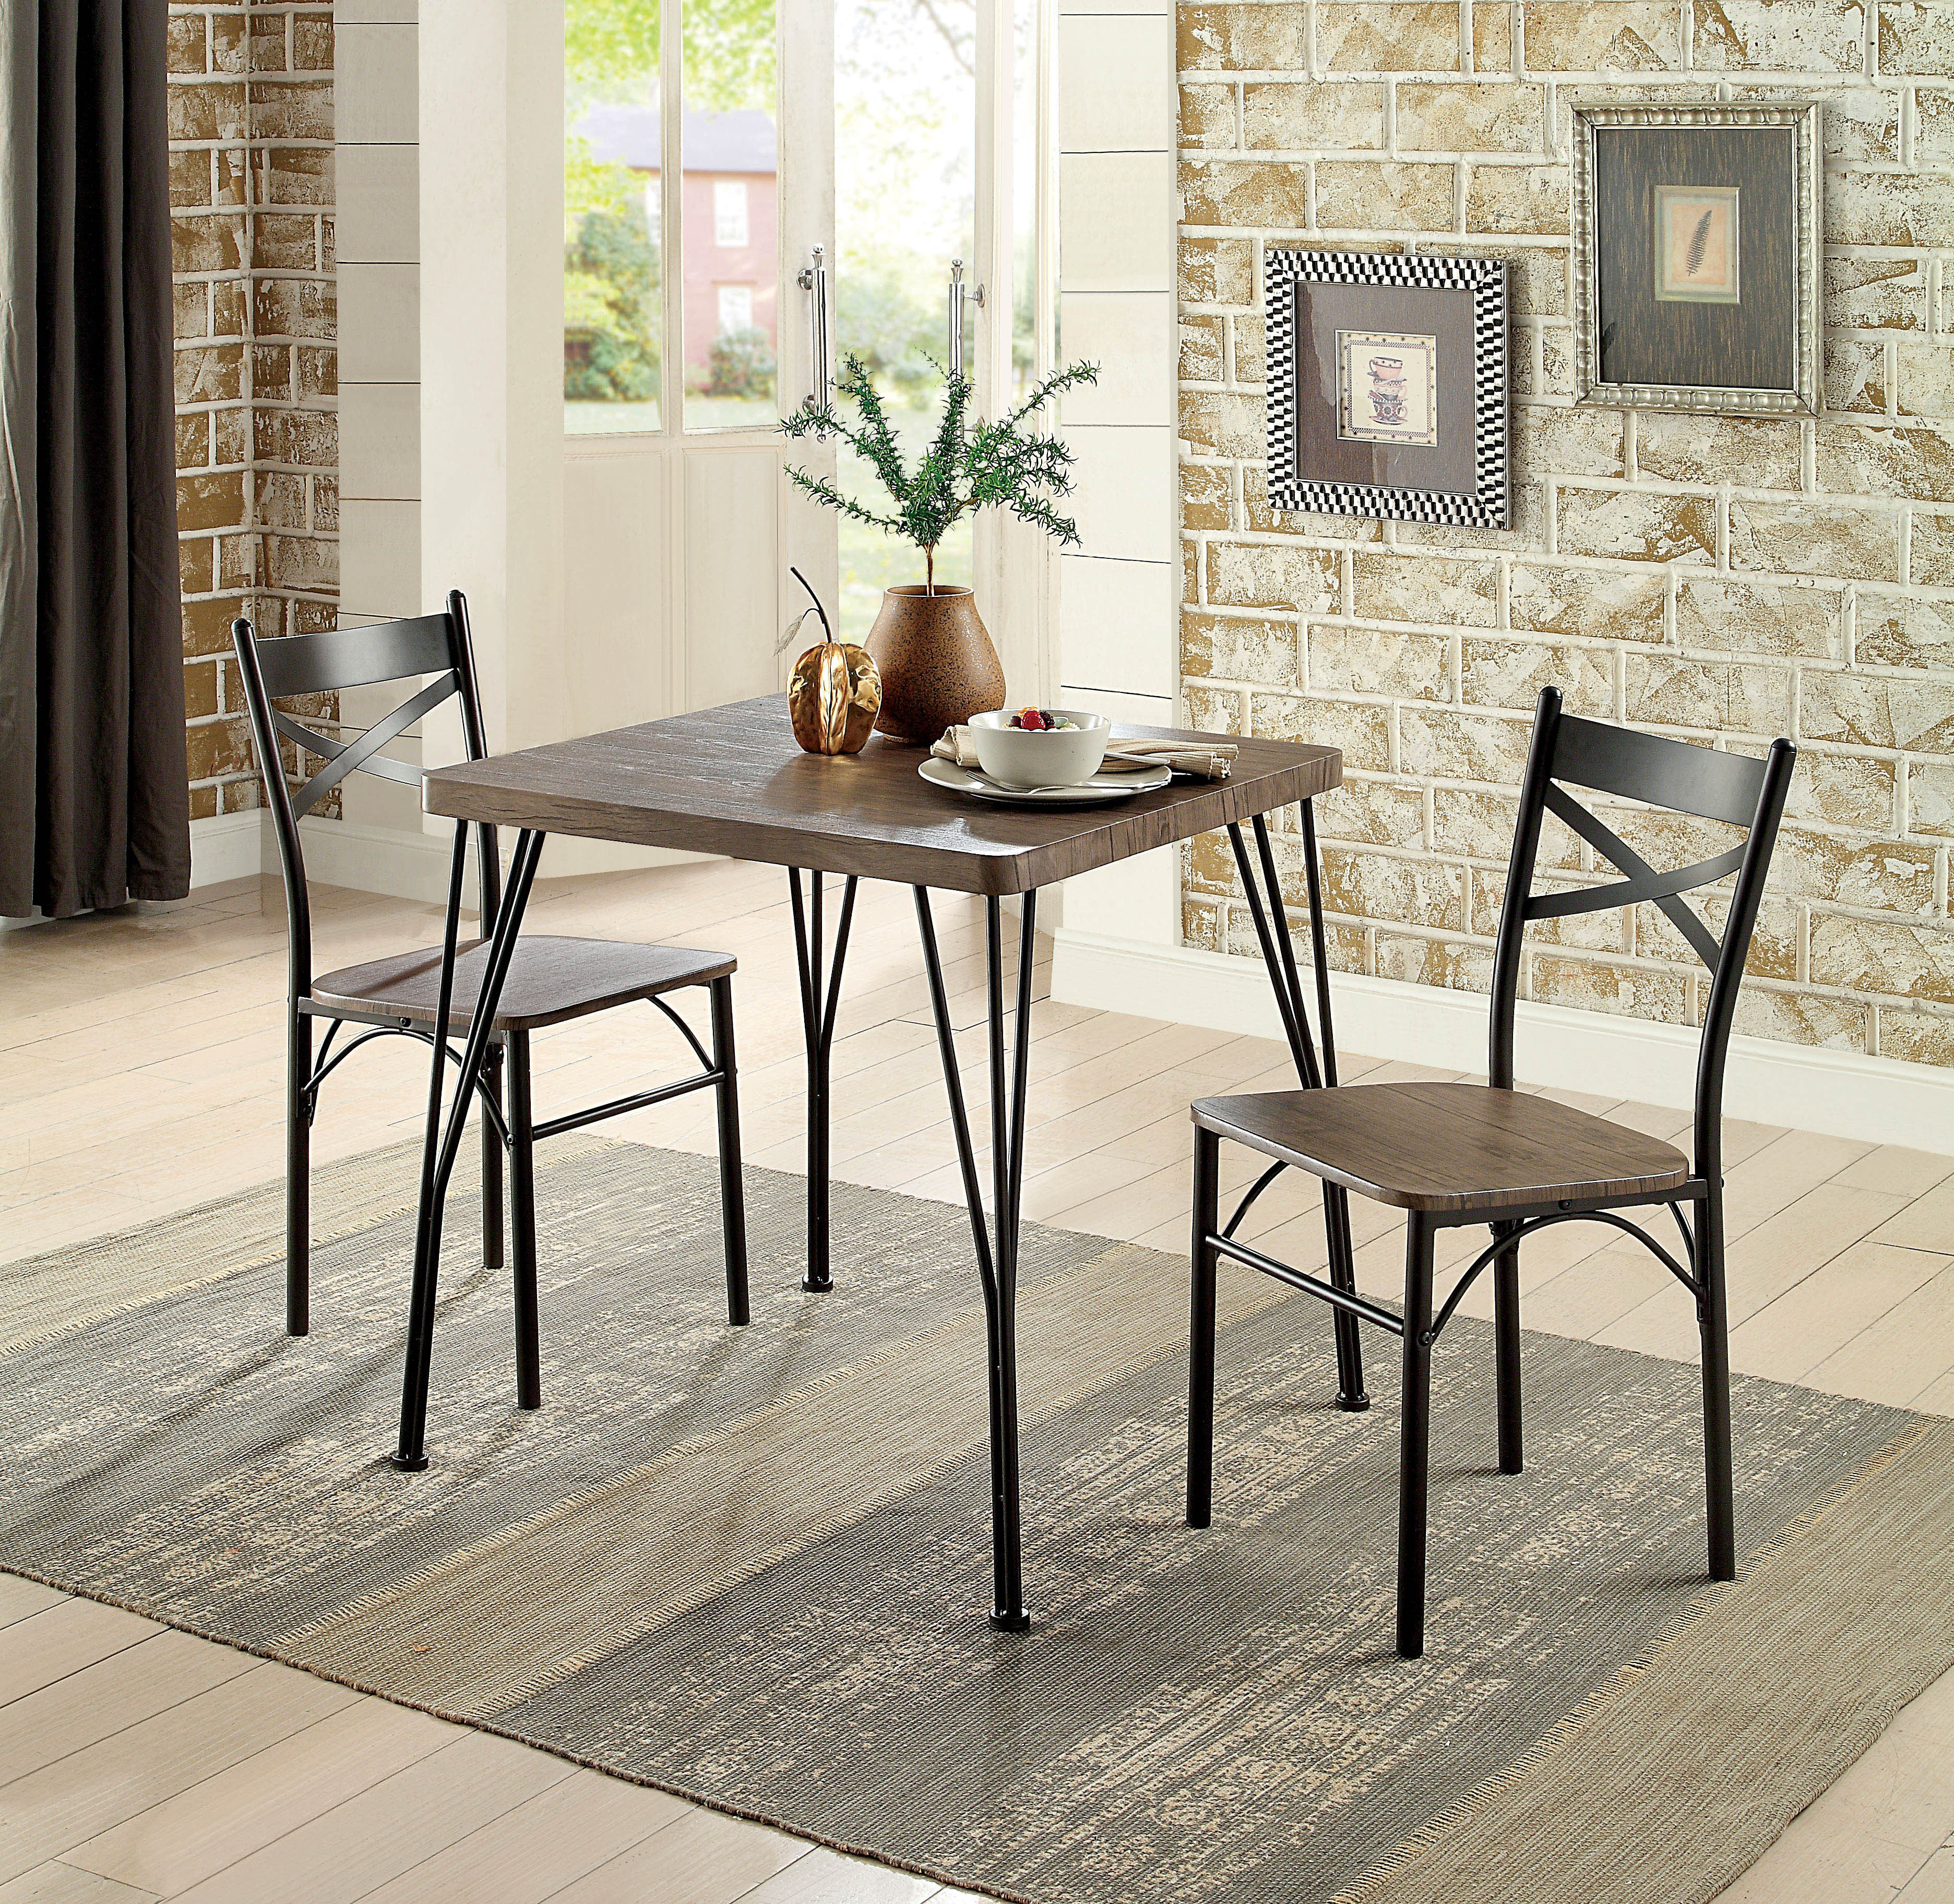 Guertin 3 Piece Dining Set Pertaining To 2018 Rossiter 3 Piece Dining Sets (Image 6 of 20)